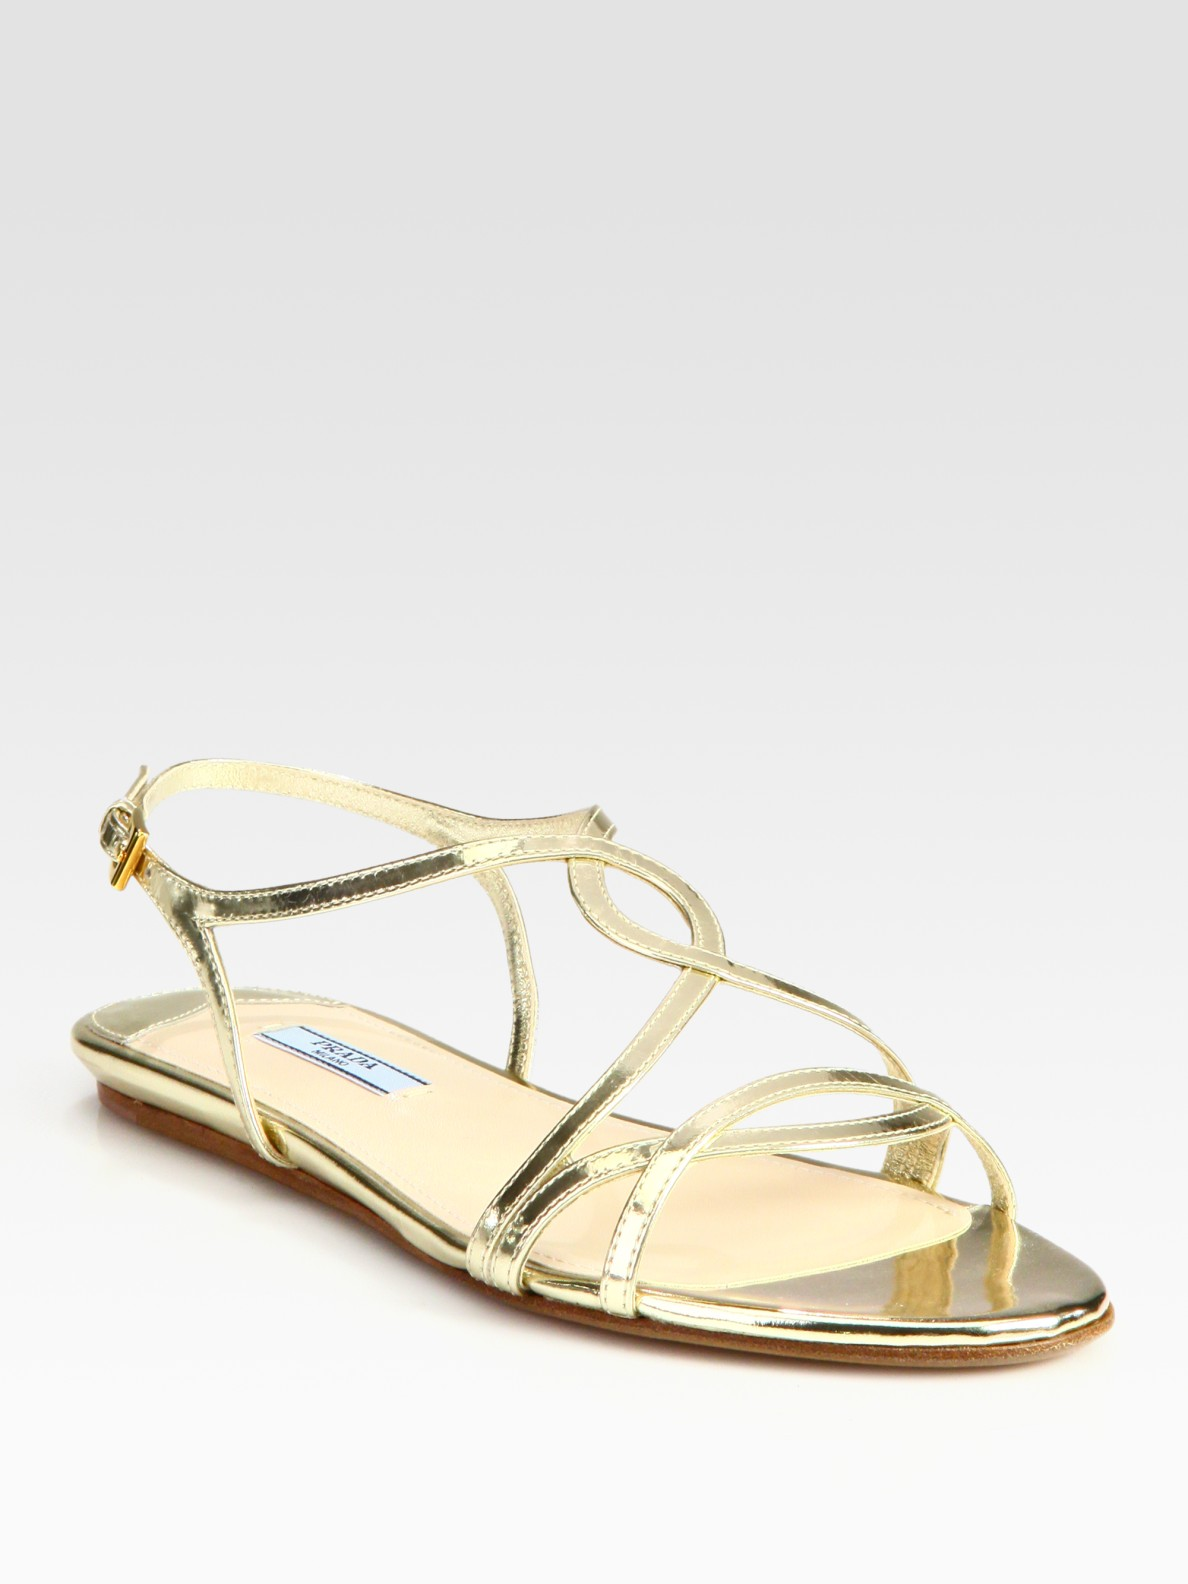 Lyst Prada Metallic Leather Flat Sandals In Metallic